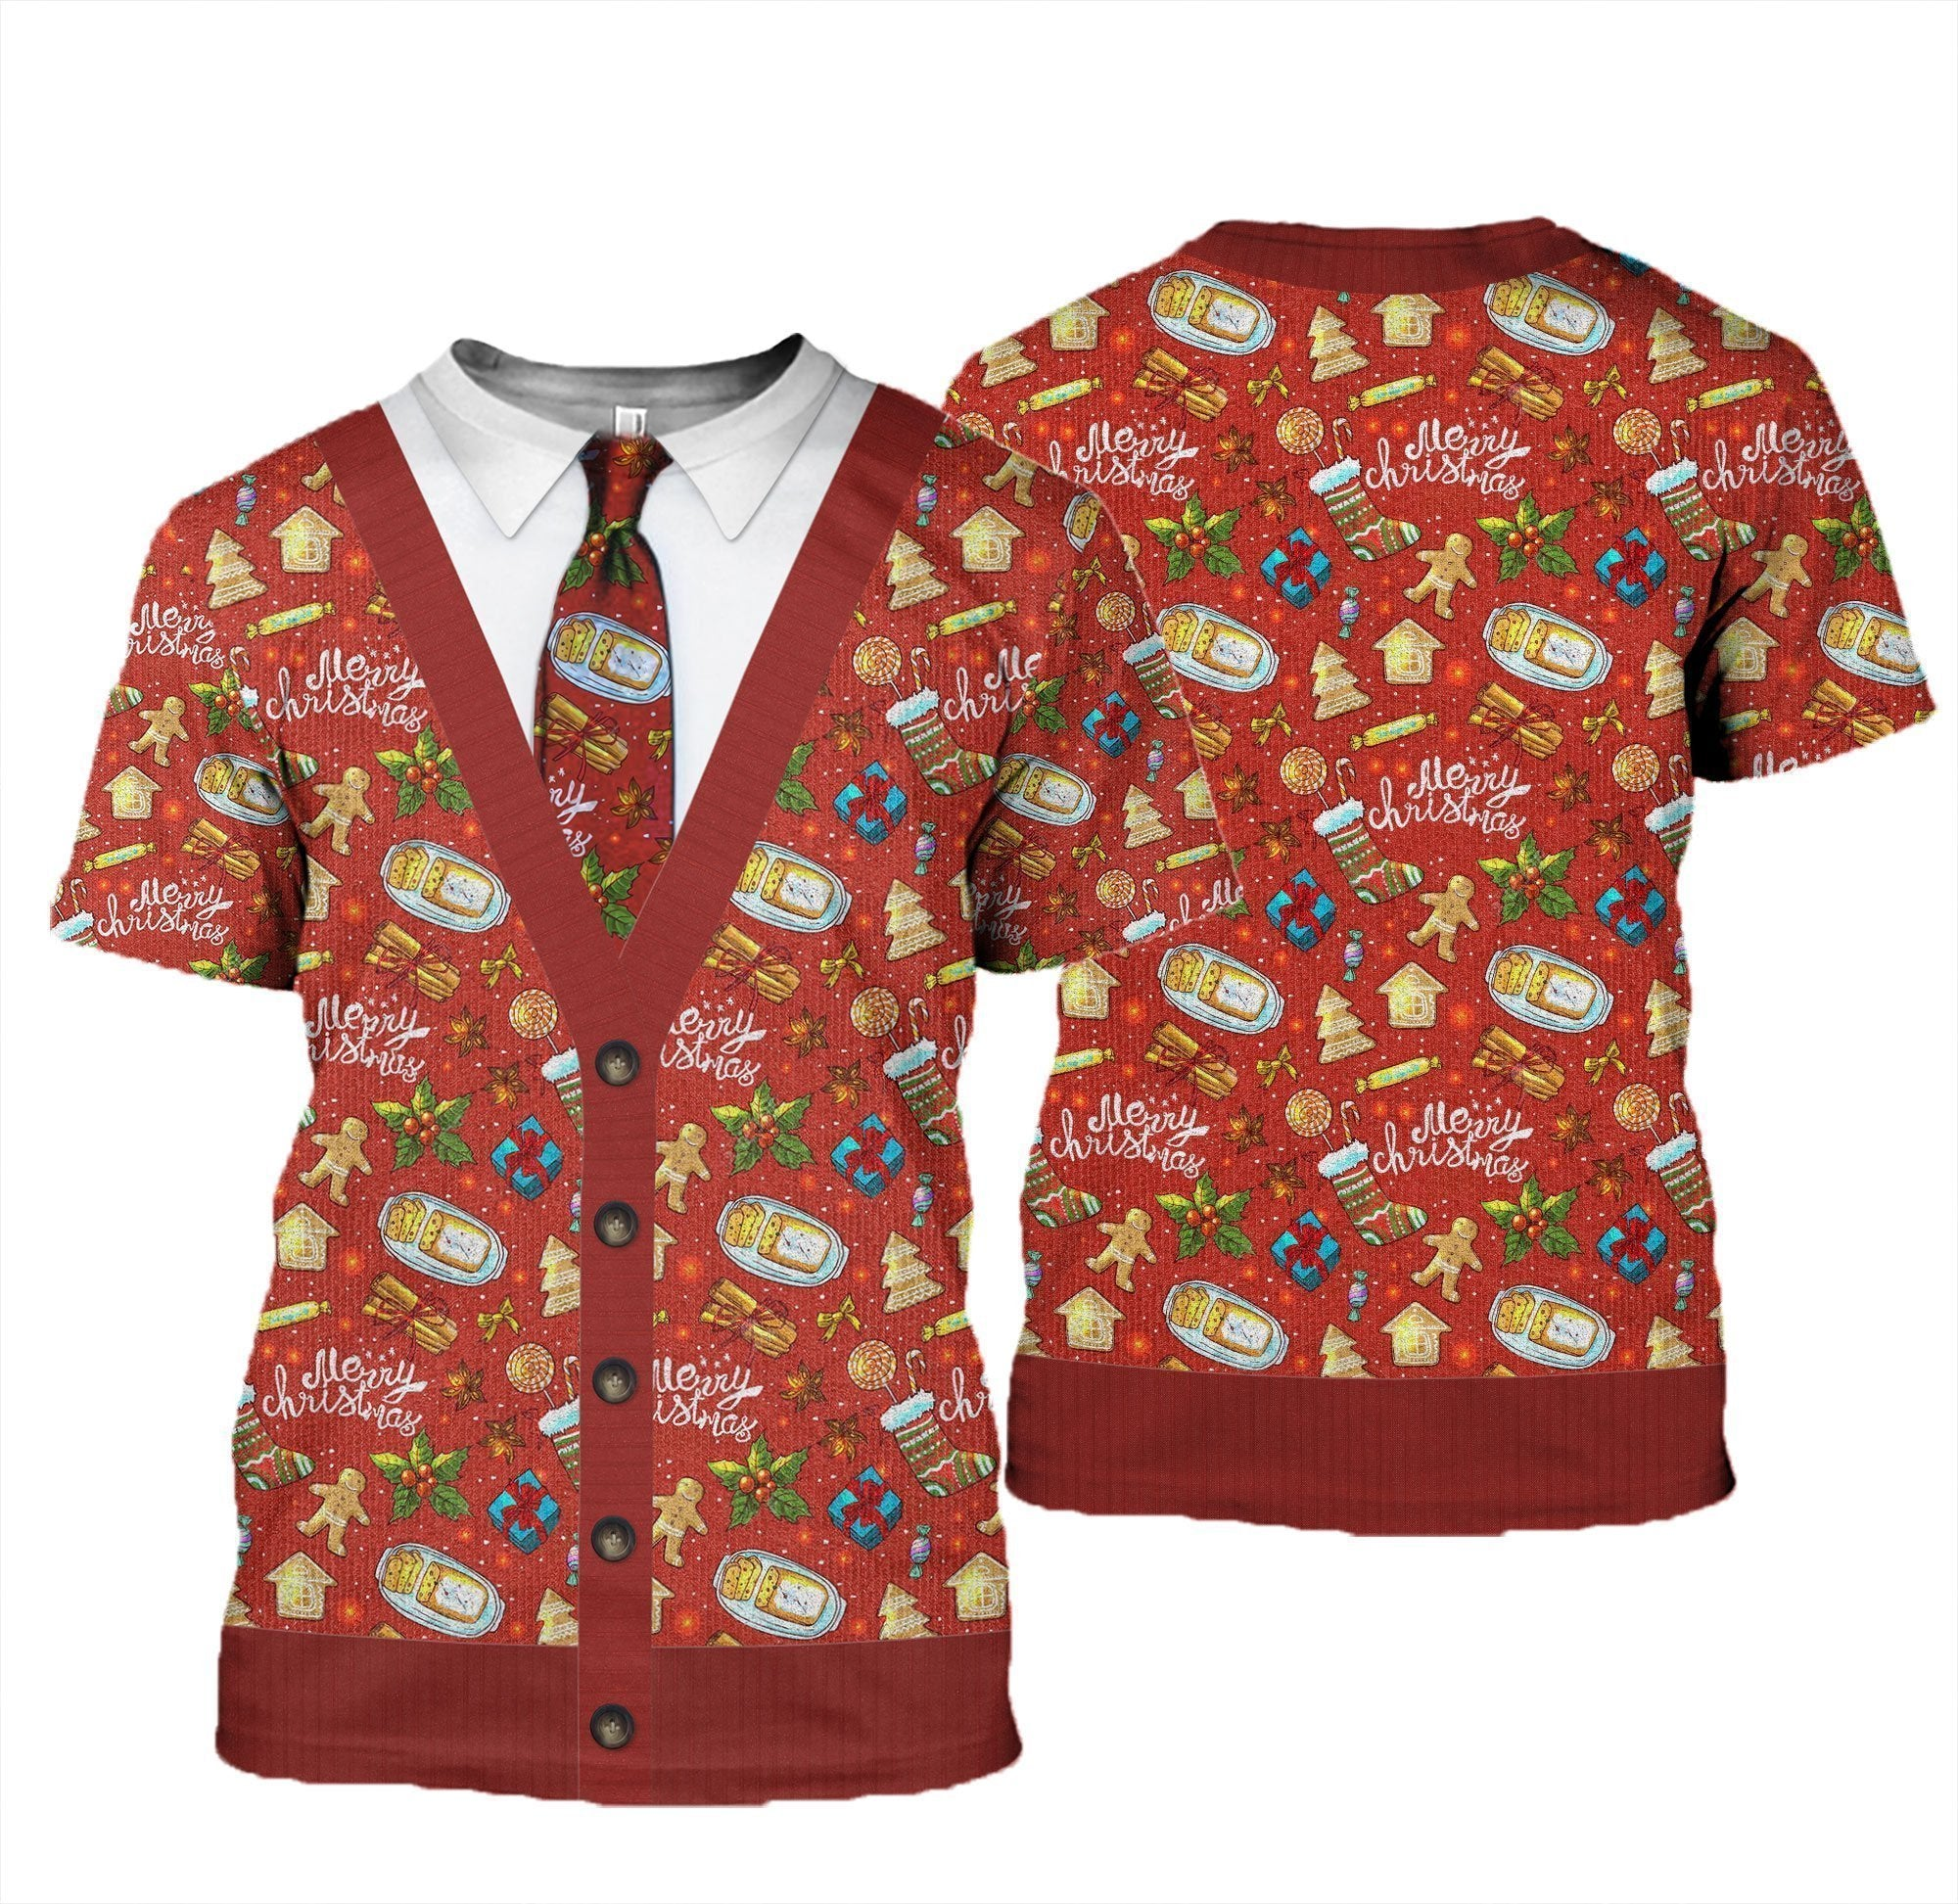 3D All Over Printed Ugly Merry Christmas Shirts and Shorts - Amaze Style™